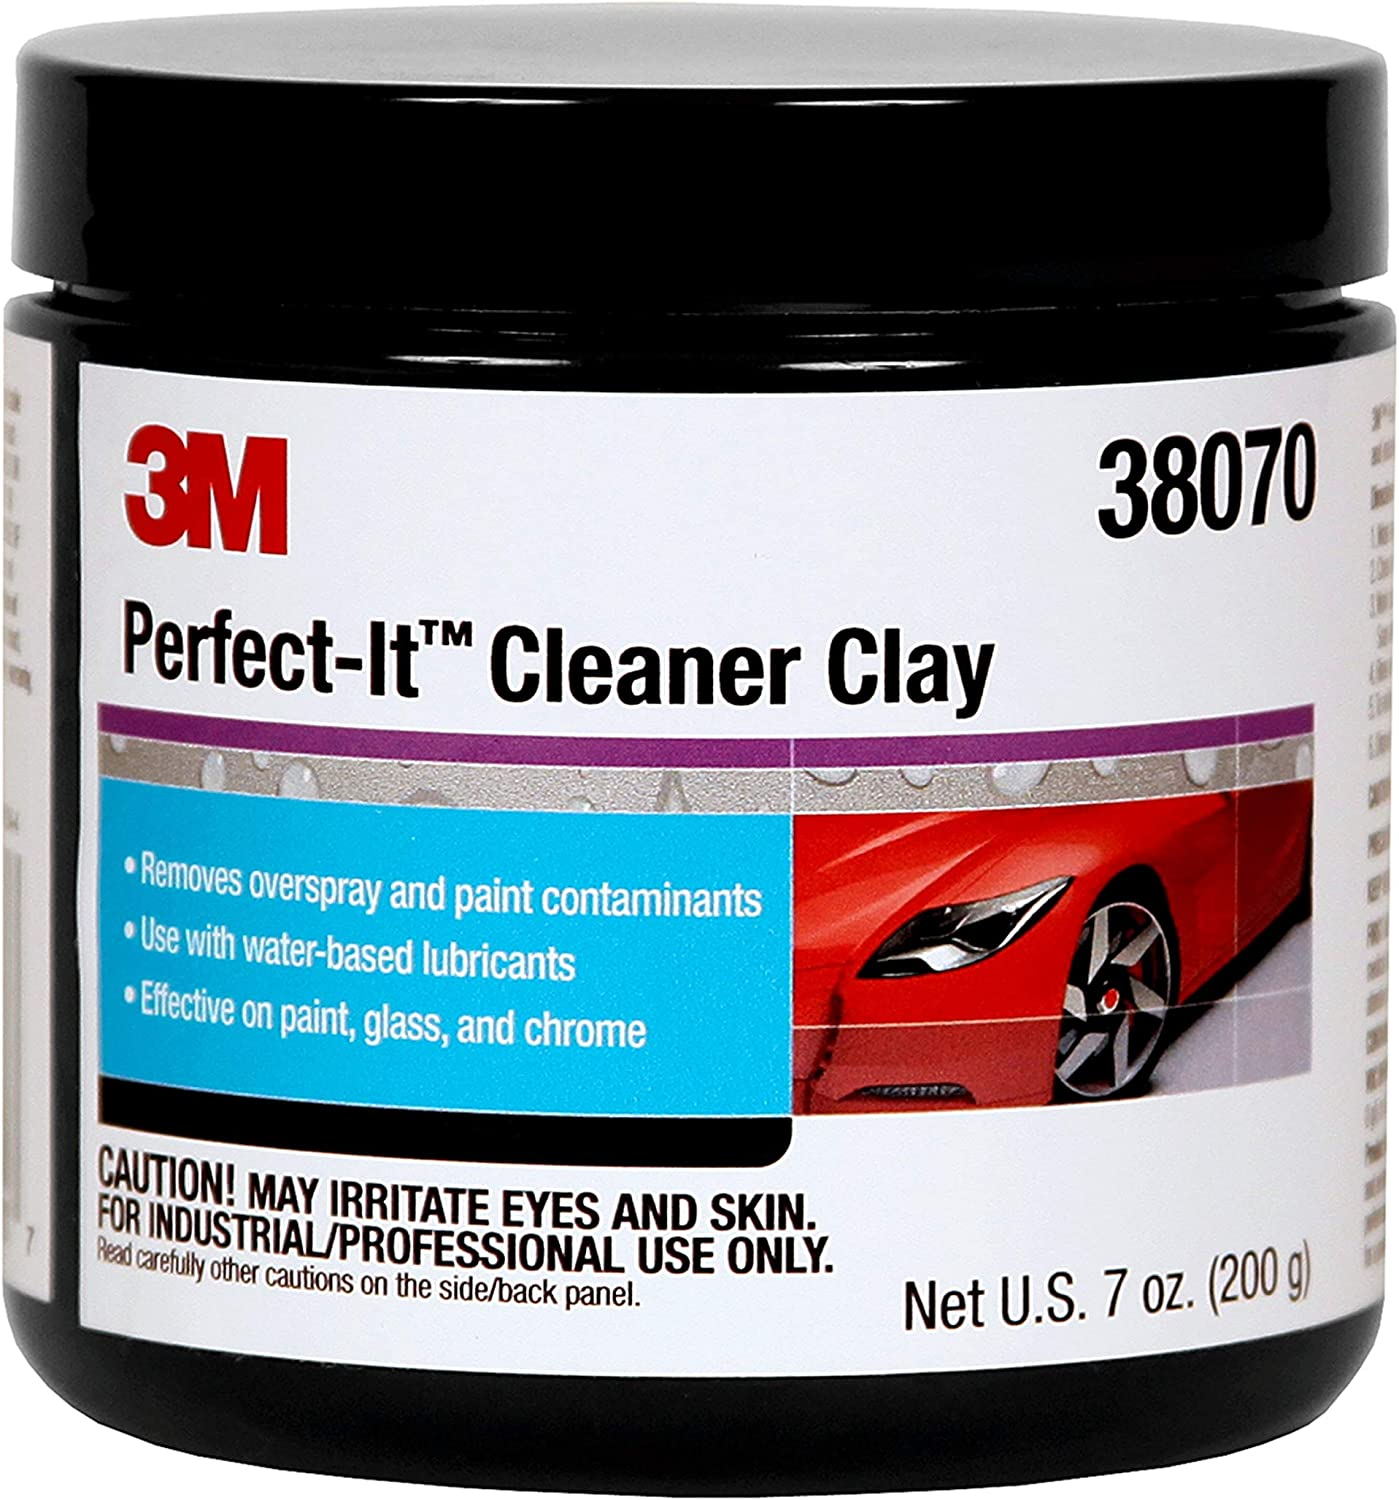 3M Perfect-It Cleaner Clay, 38070, 200 g, 1 bar per bottle